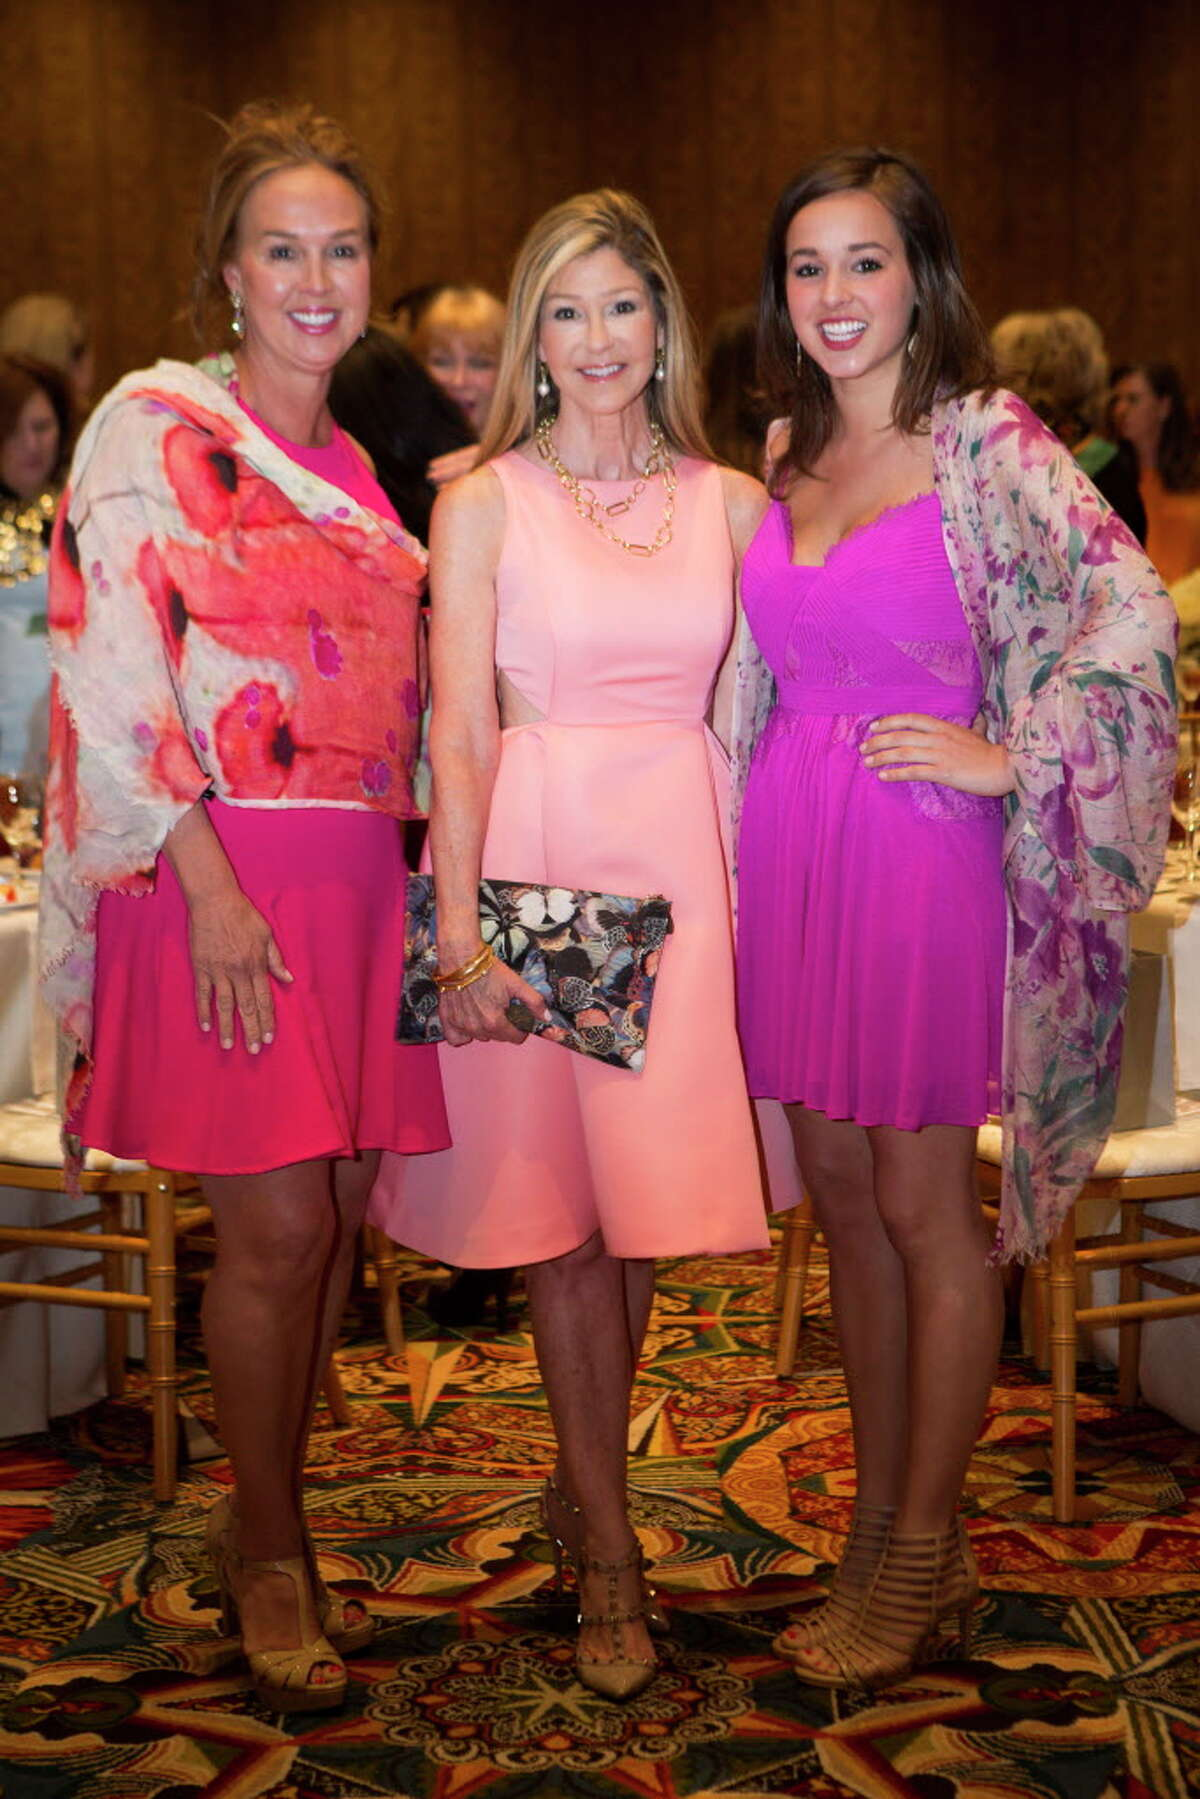 Julie Brown, Patti Murphy and Madeline Brown at The 34th Annual Houston Chronicle Best Dressed Luncheon, Tuesday, March 22, 2016, in Houston.